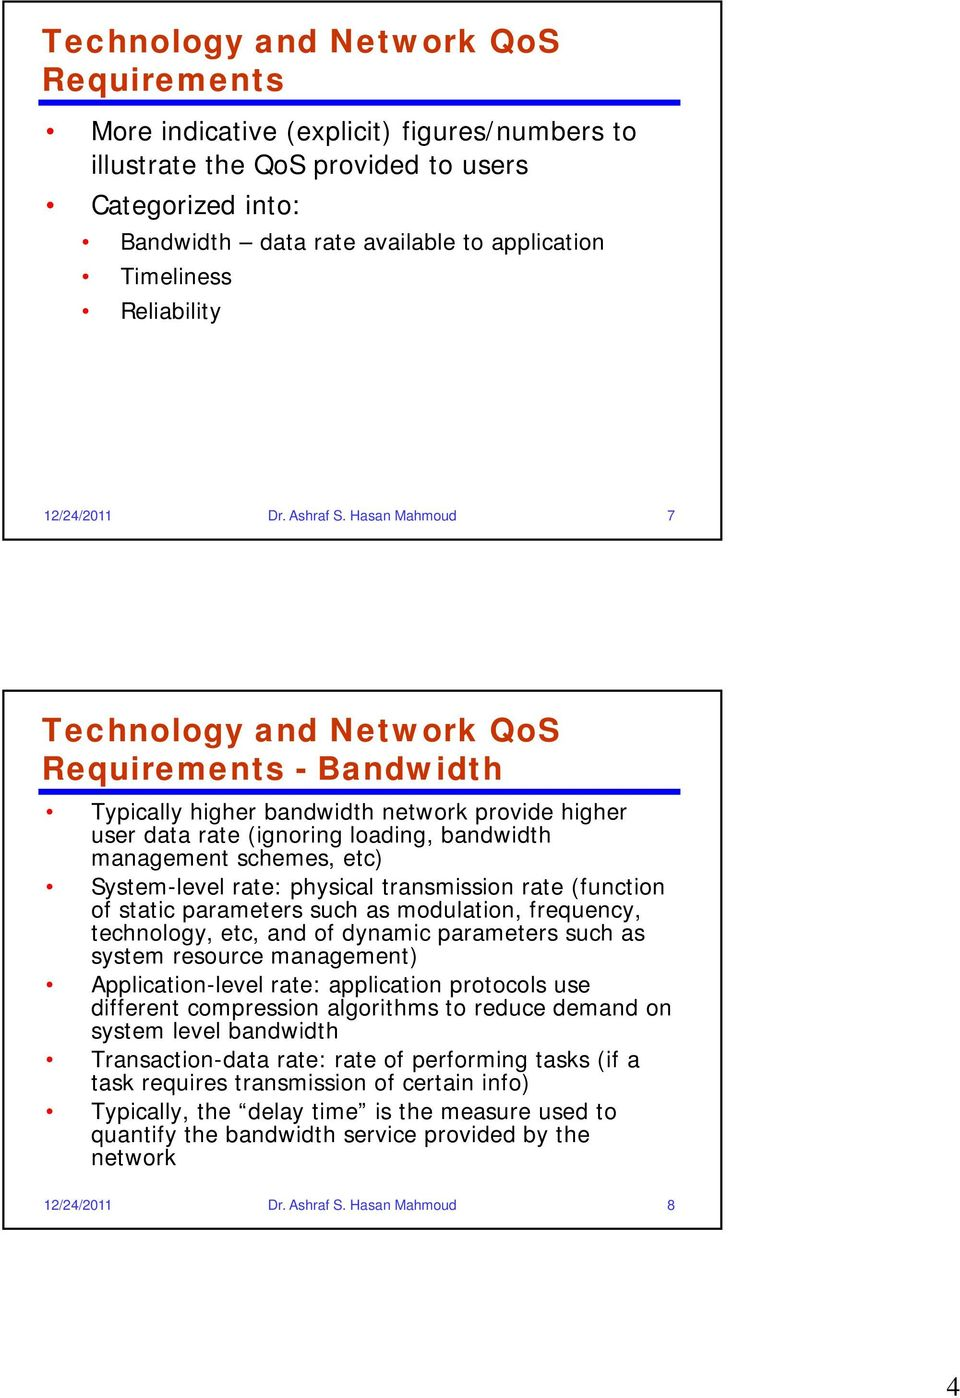 Hasan Mahmoud 7 Technology and Network QoS Requirements - Bandwidth Typically higher bandwidth network provide higher user data rate (ignoring loading, bandwidth management schemes, etc) System-level